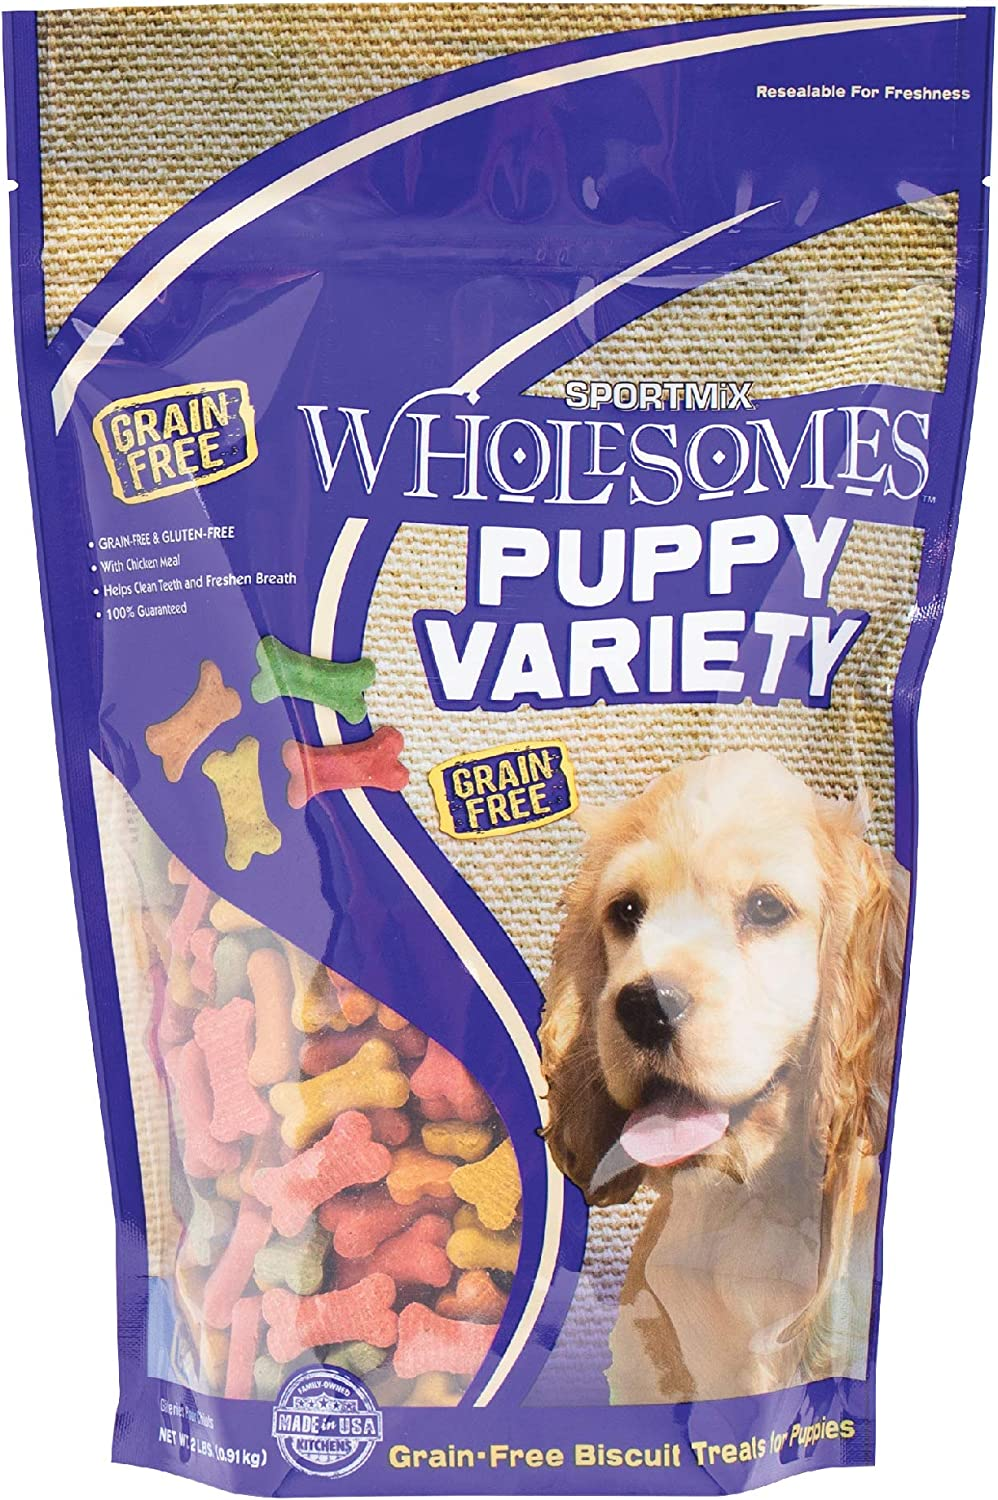 Sportmix Wholesomes Puppy Variety Grain Free Dog Biscuit Treats, 2 Lb.